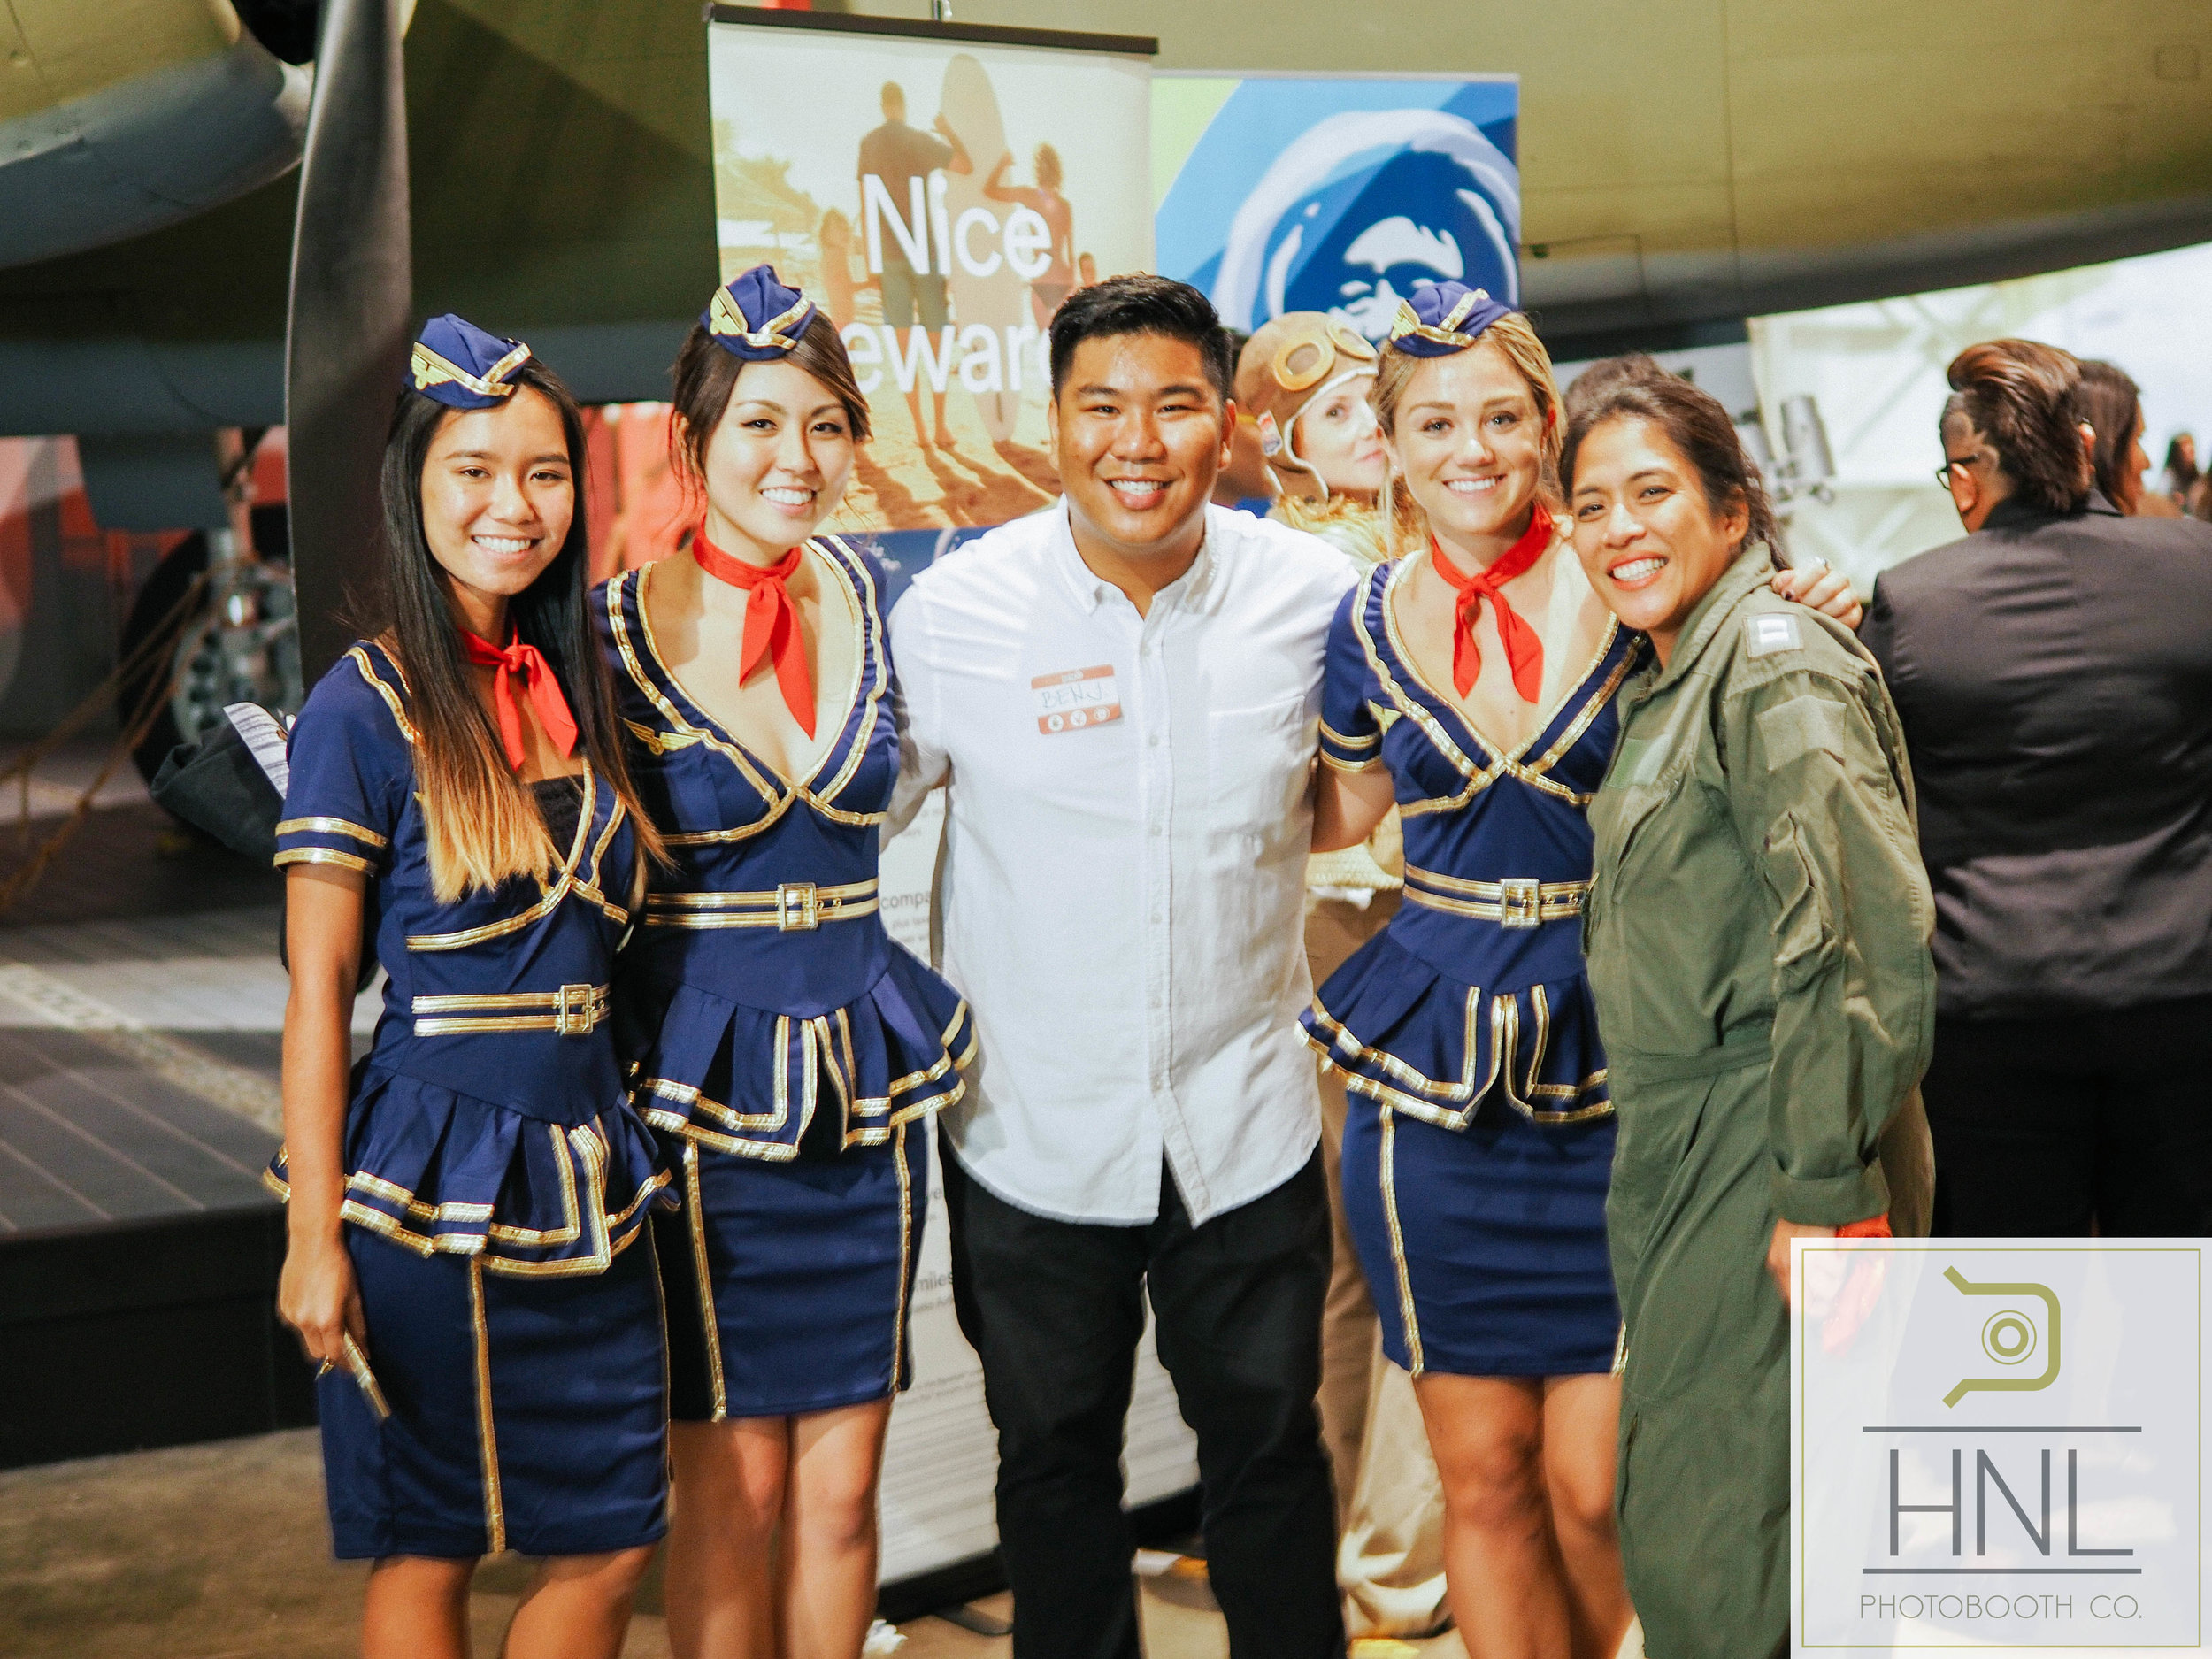 Yelp Event party rental photo booth flight club at the pacific aviation museum at pearl harbor honolulu hawaii (32).JPG